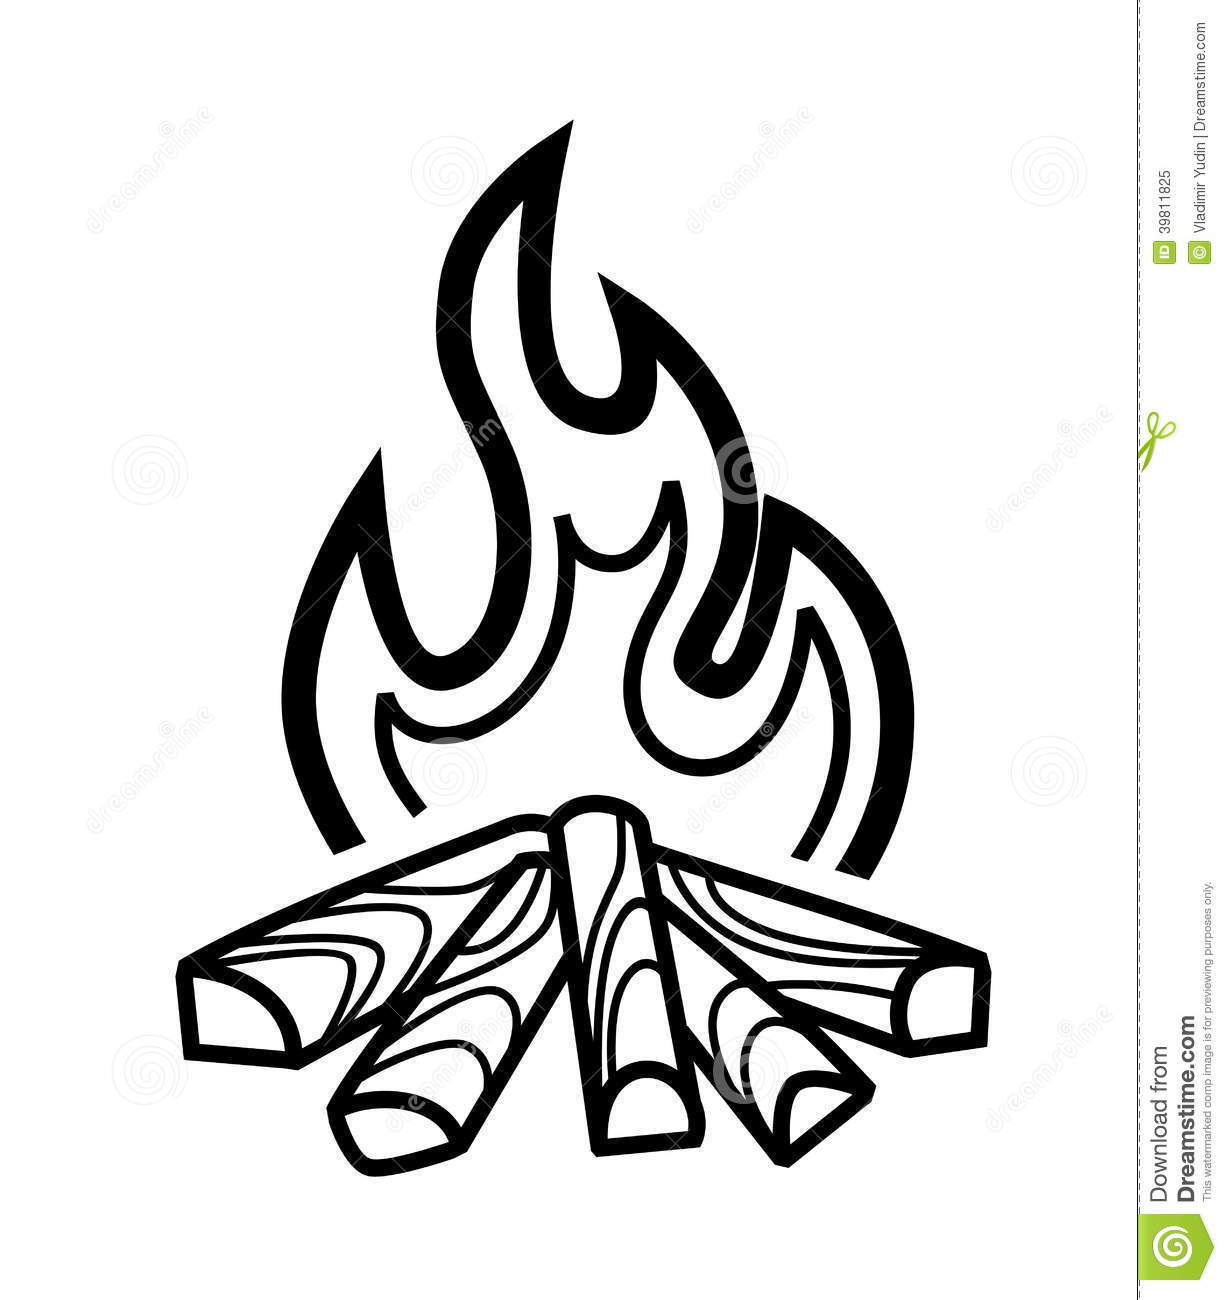 Campfire clipart black and white 6 » Clipart Station.